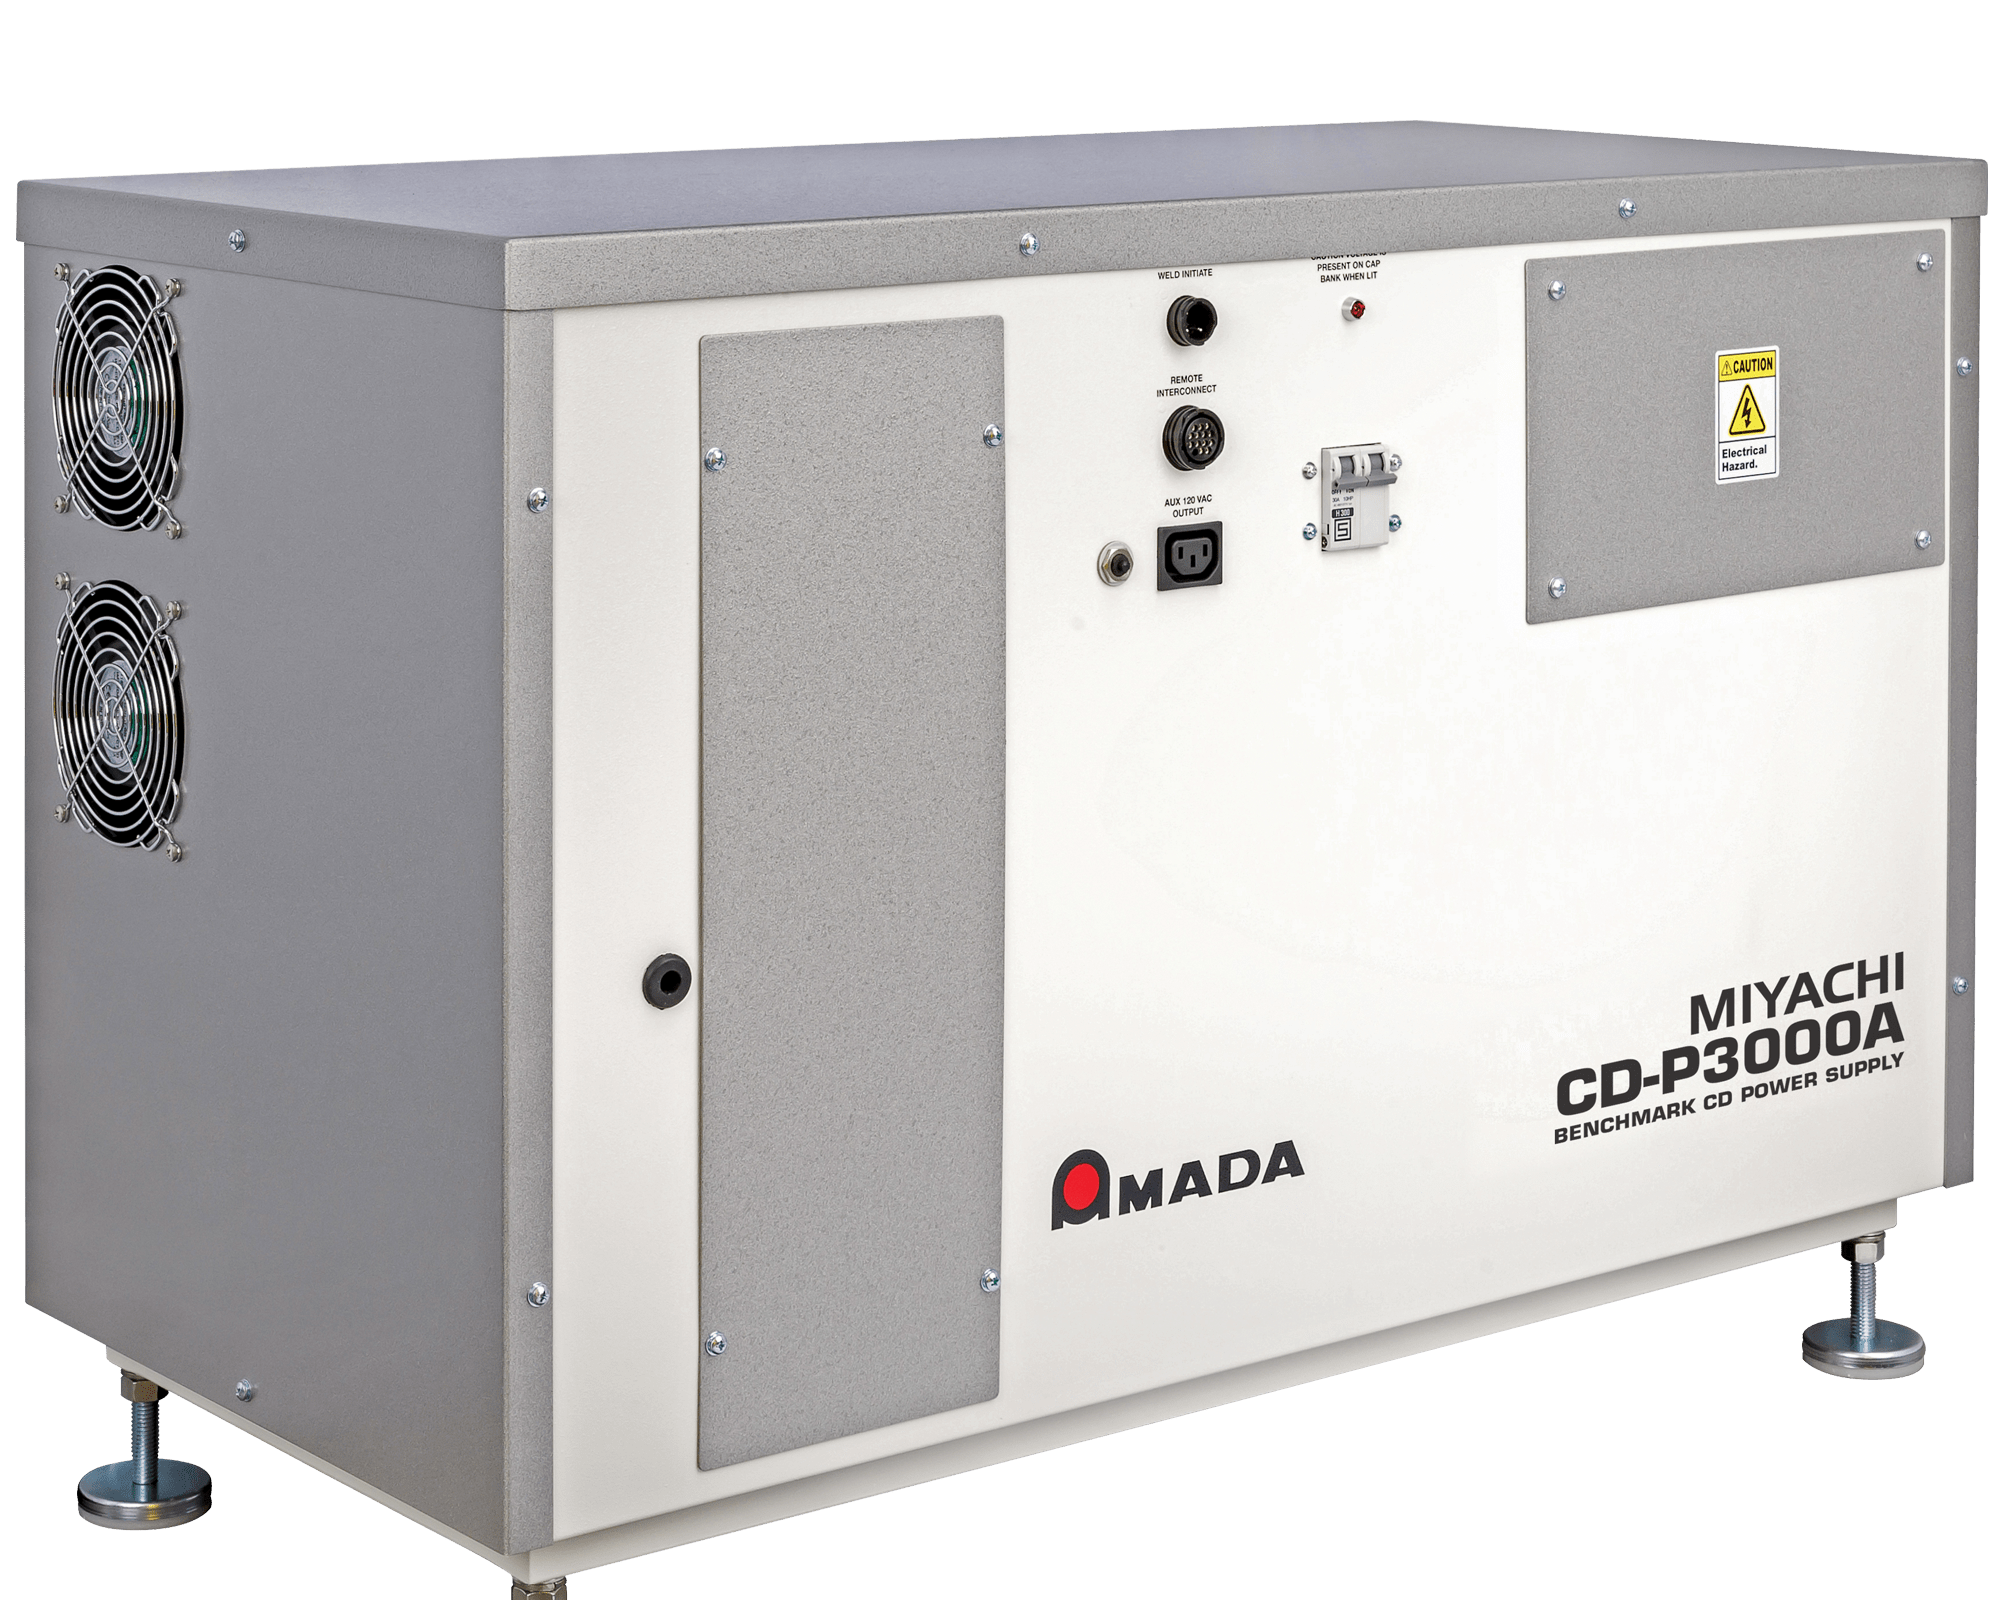 CD-P3000A Capacitive Discharge Welder